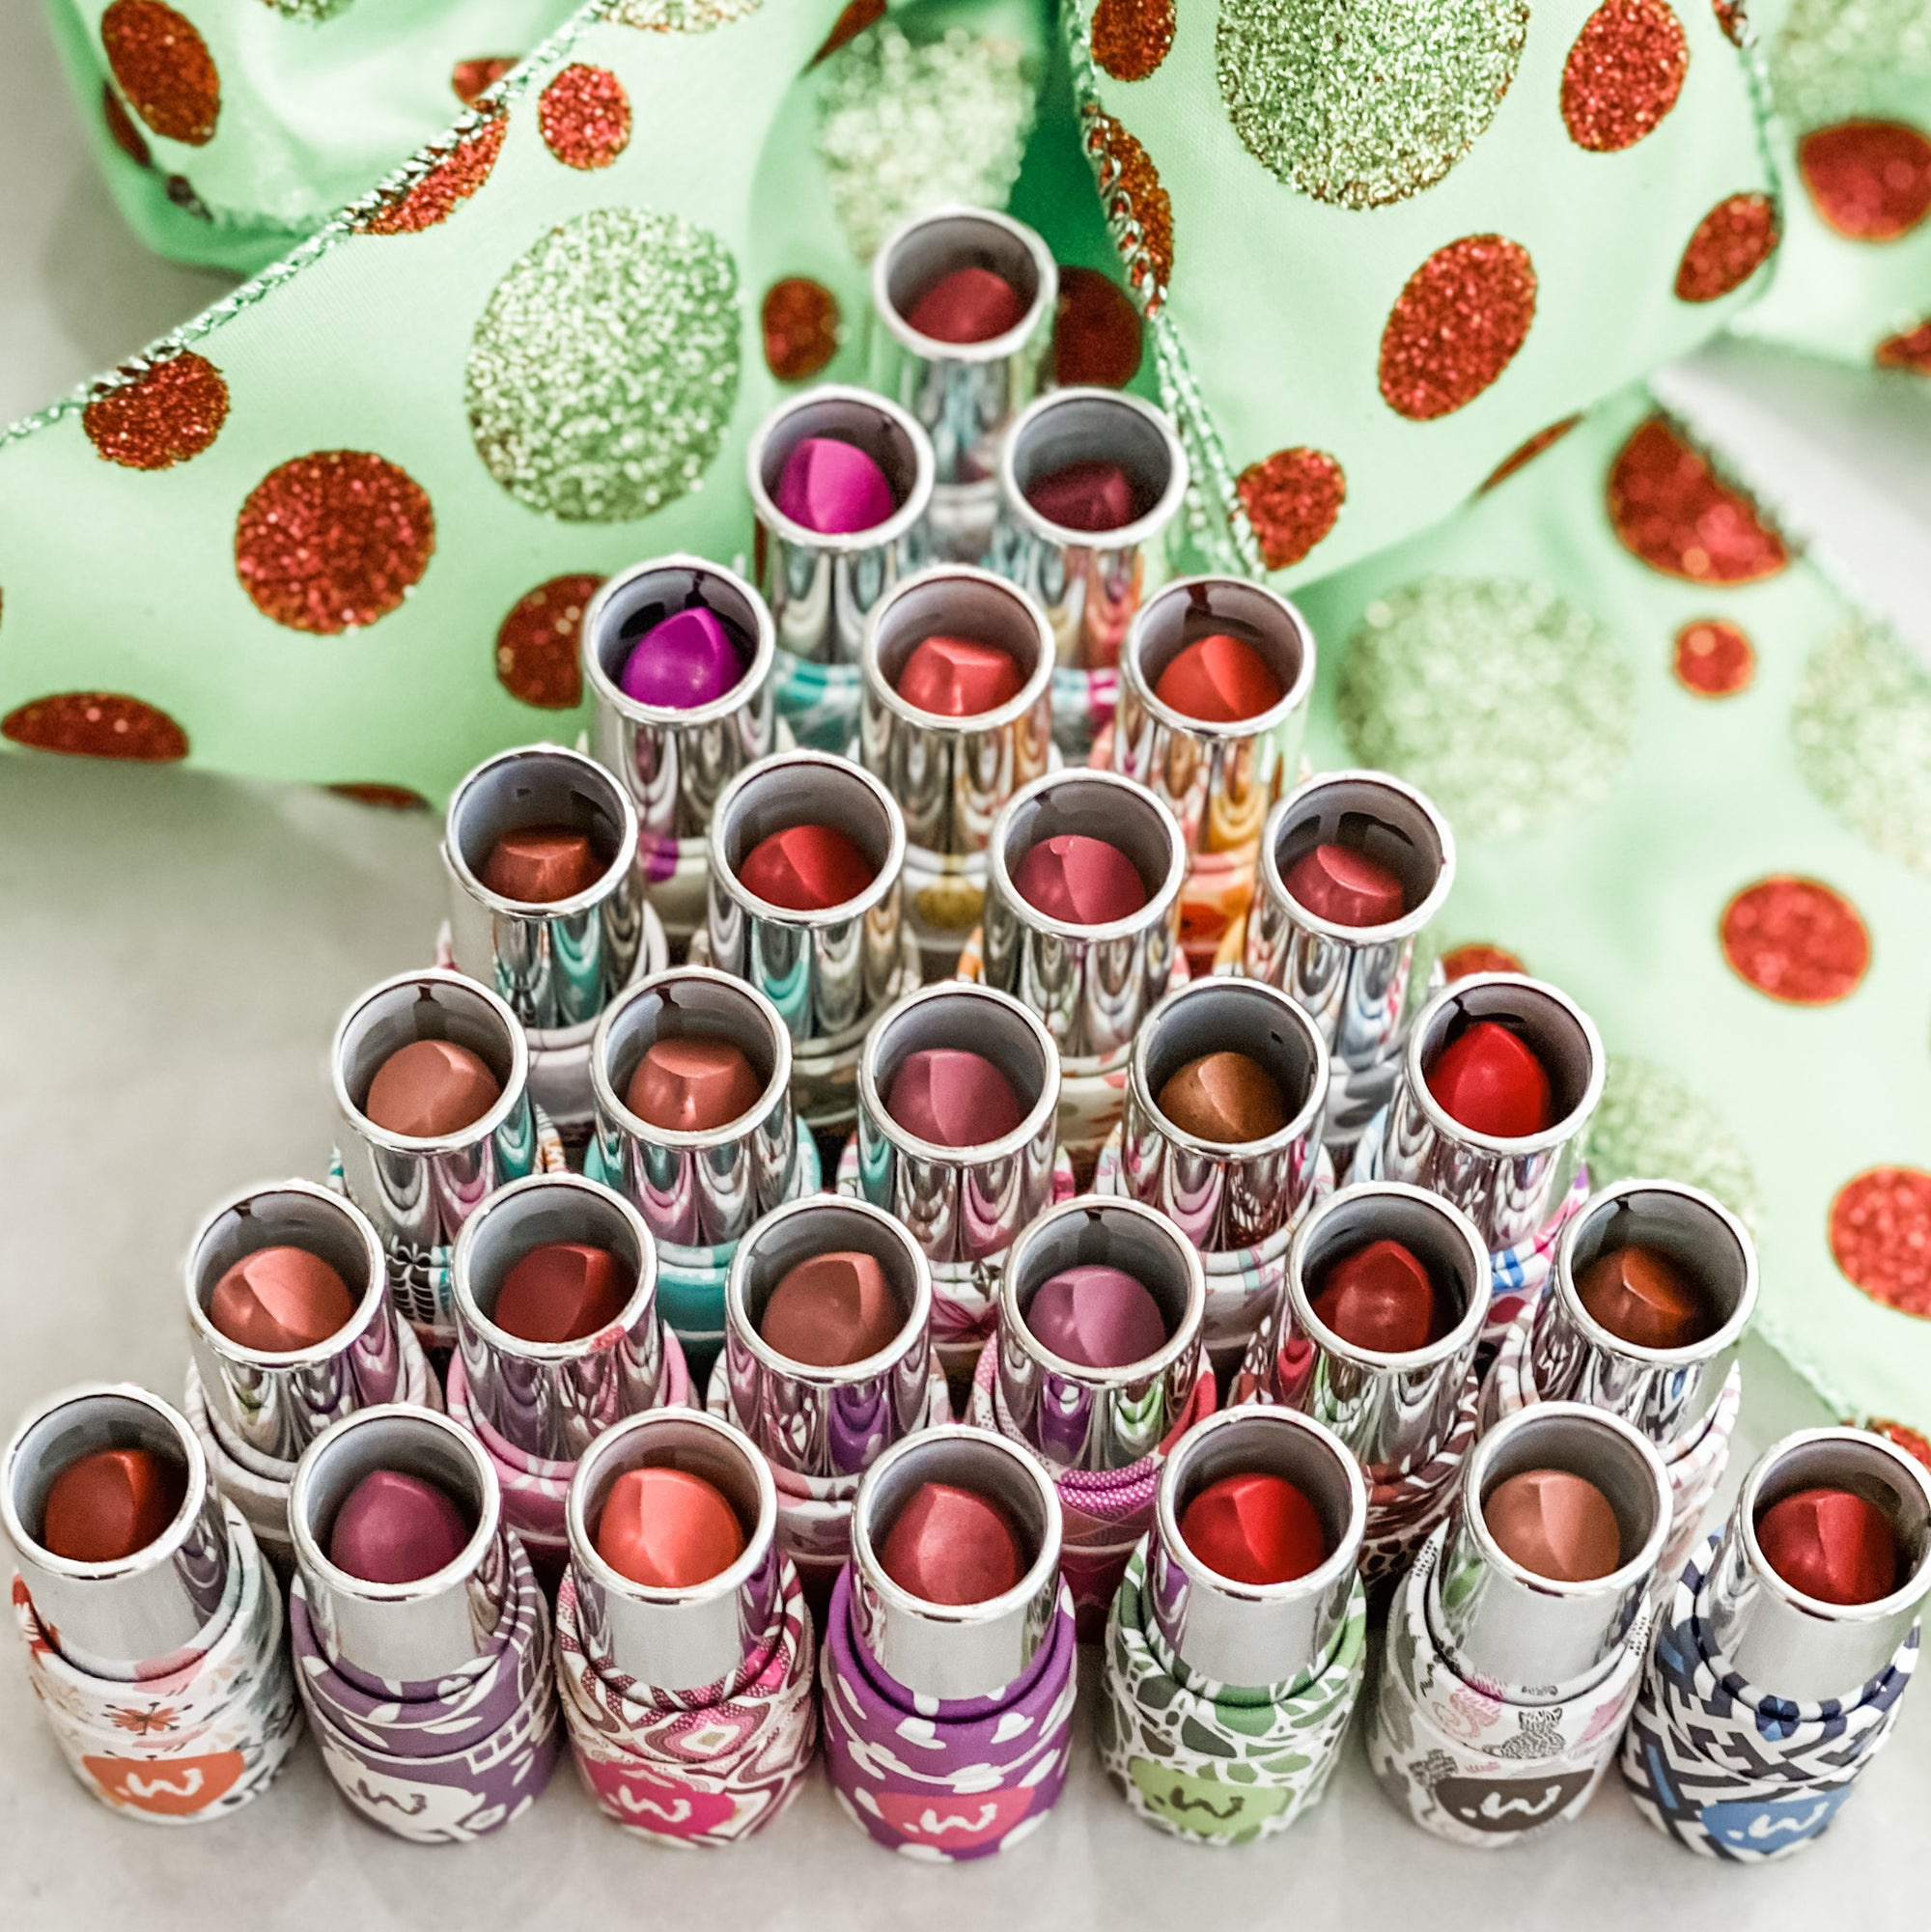 Our experts top 8 picks for Holiday lipstick colors and trends